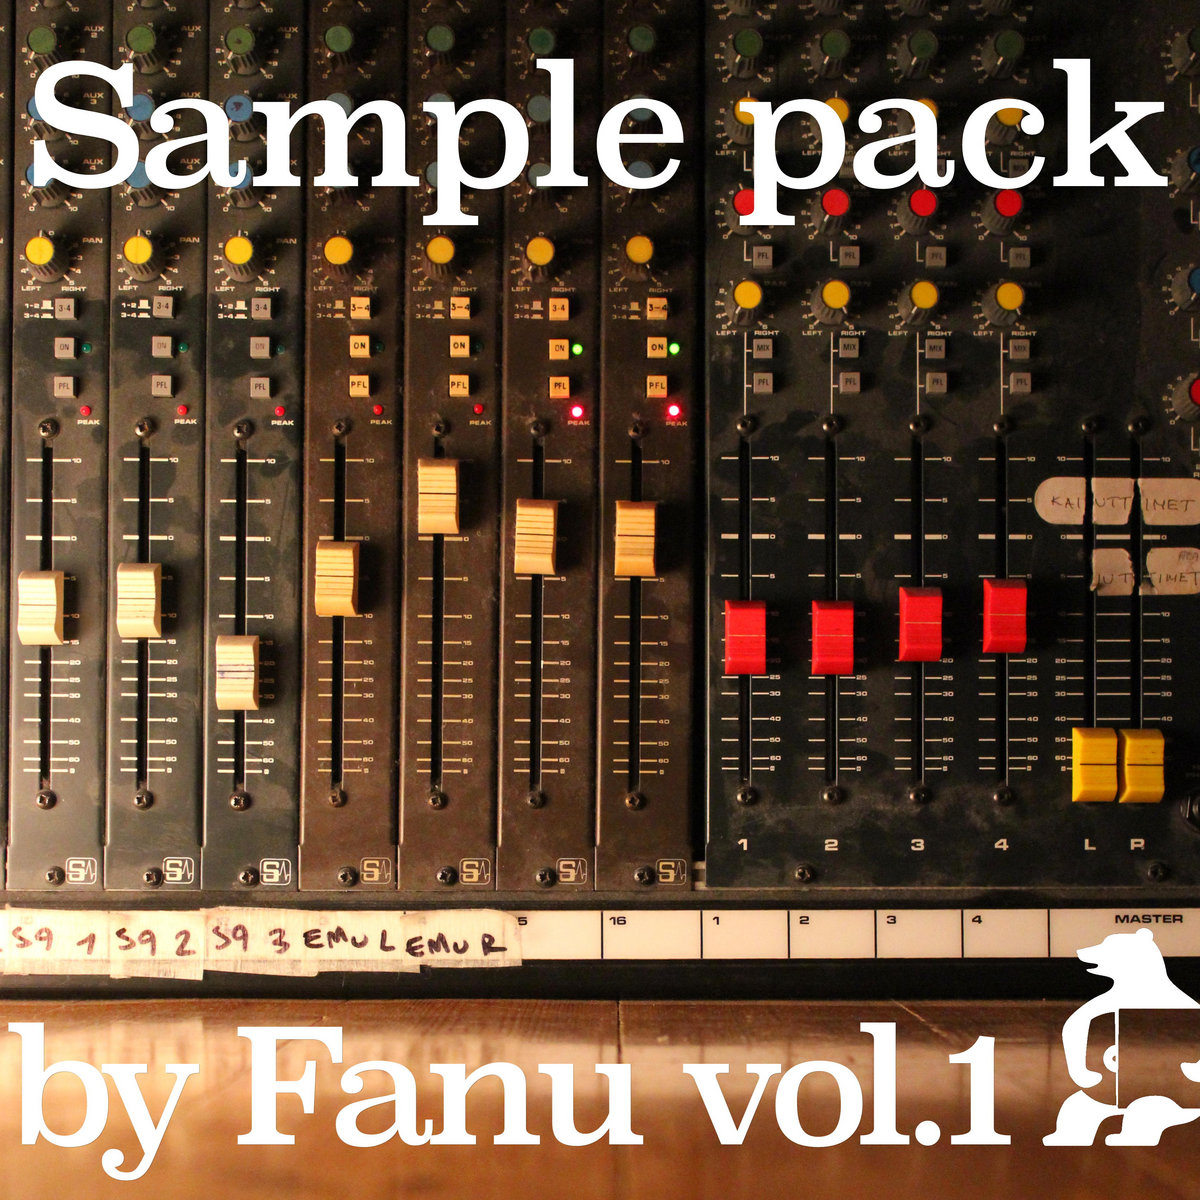 Sample Pack by Fanu Vol  1 | Fanu / FatGyver